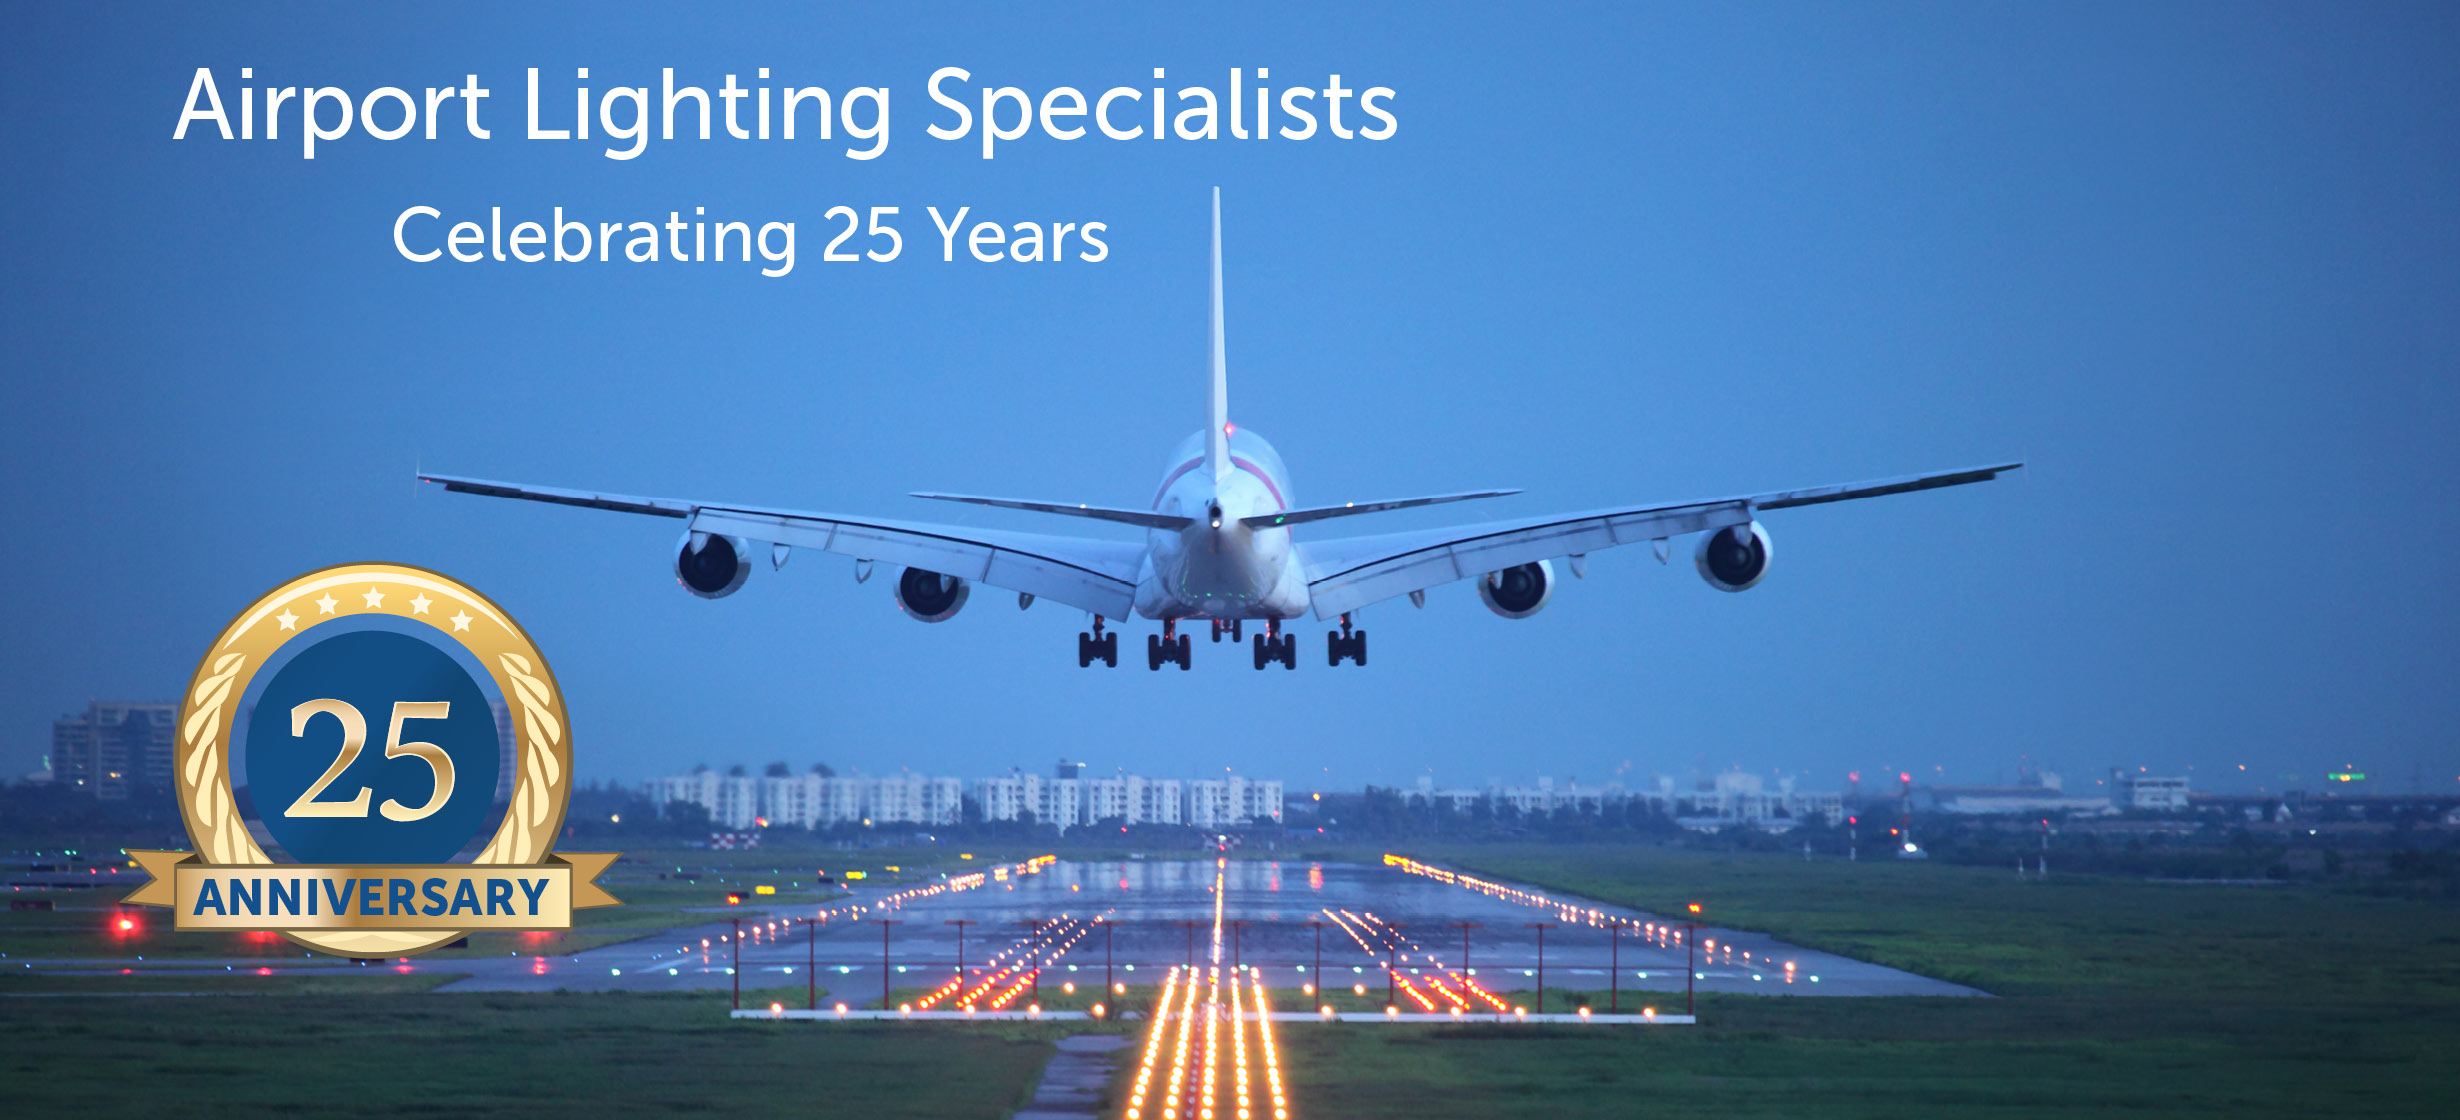 Airport Lighting Specialists - Celebrating 25 years